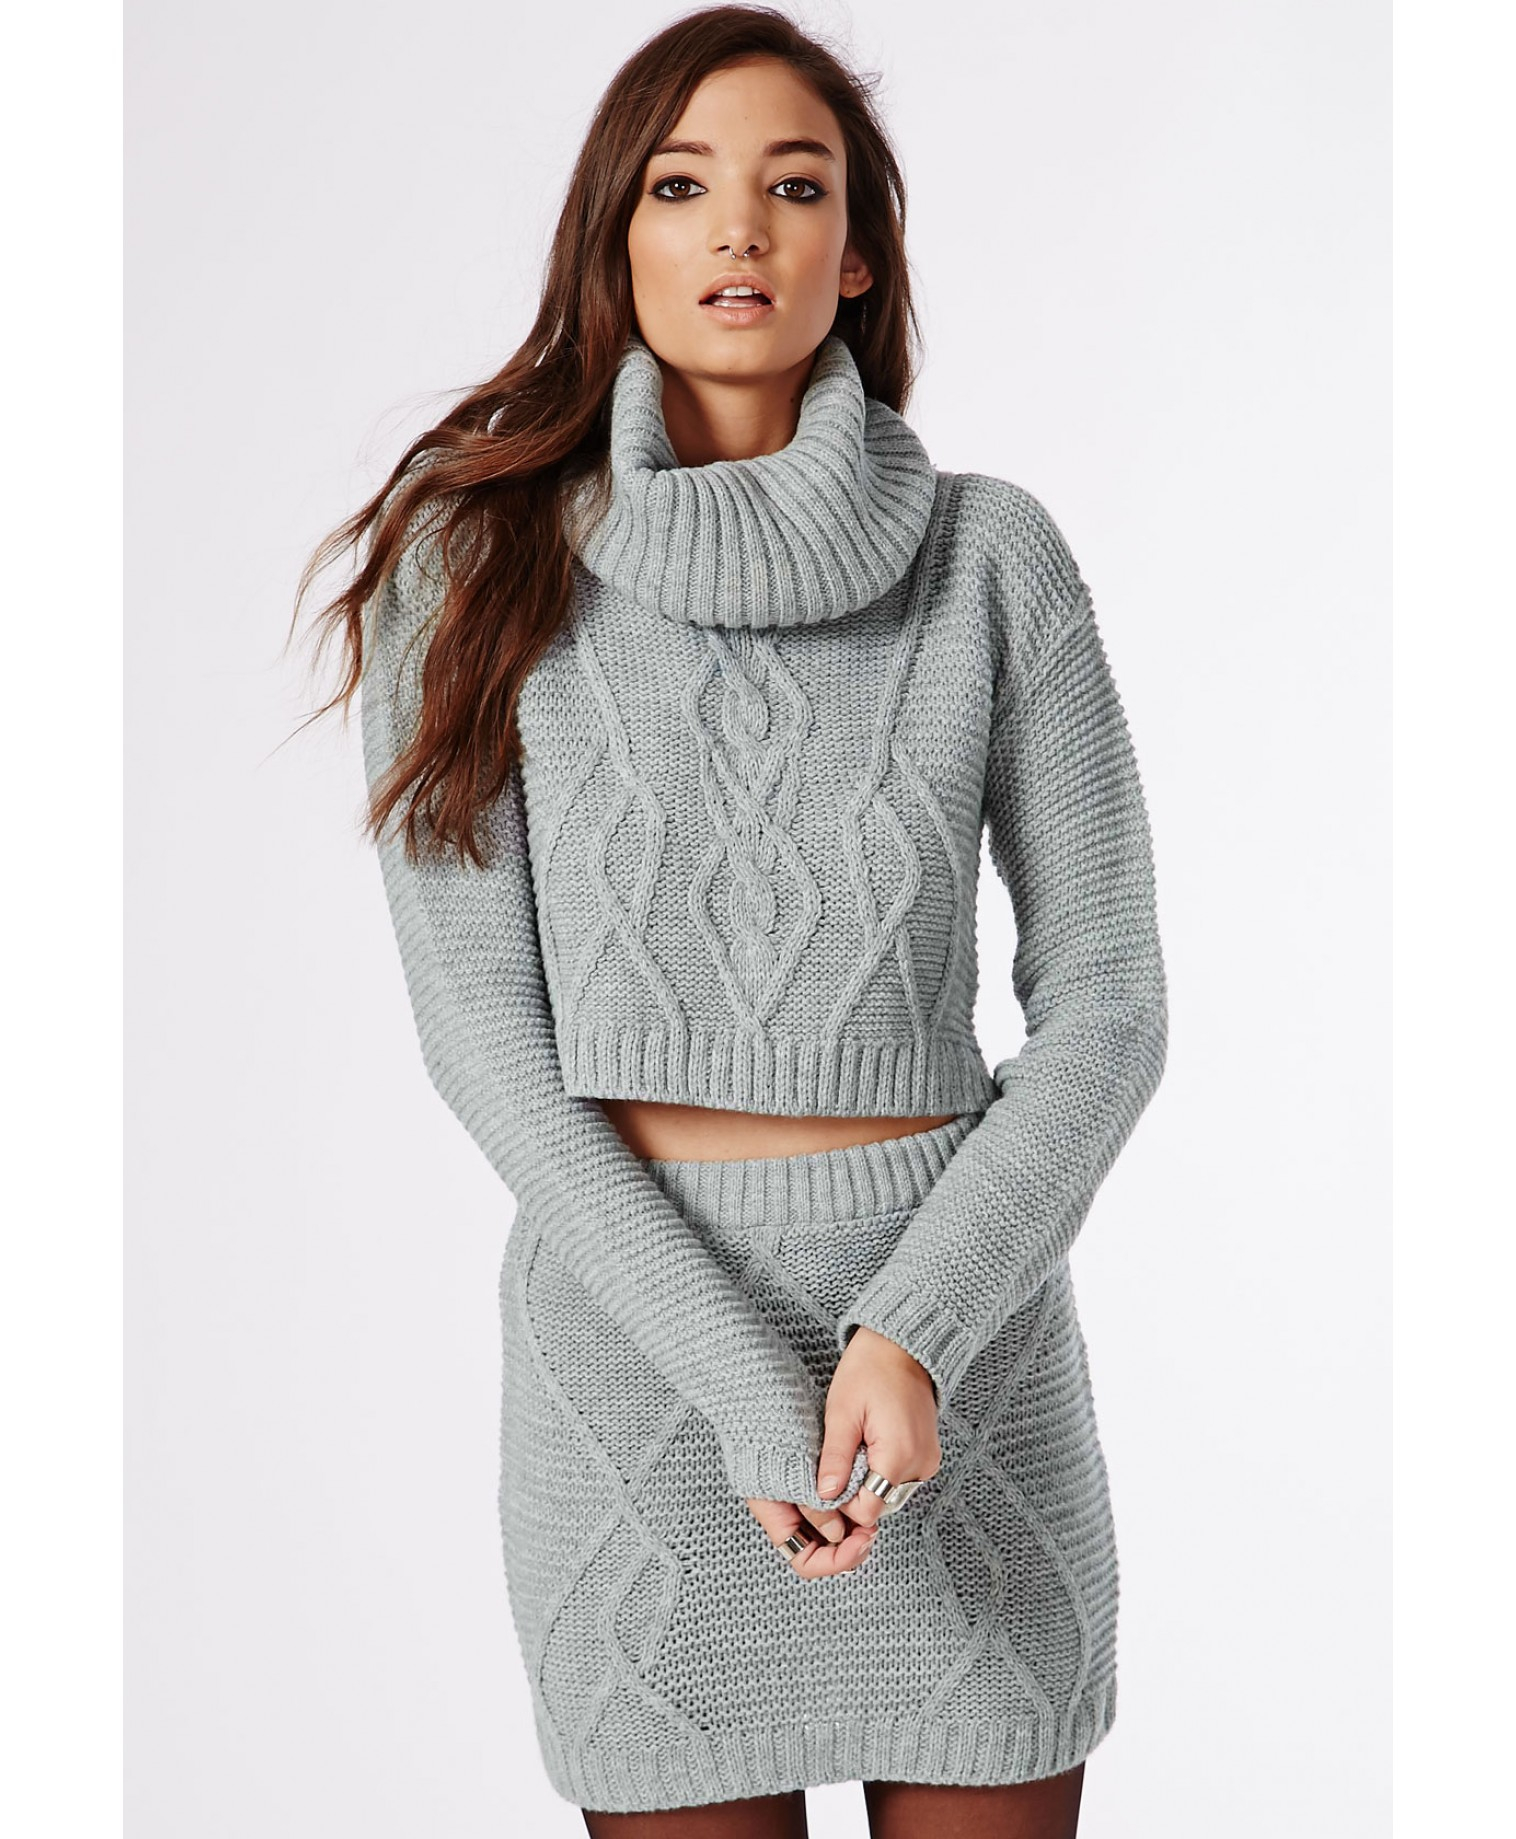 Missguided Aliya Roll Neck Cable Knit Crop Sweater Grey in Gray (grey) Lyst